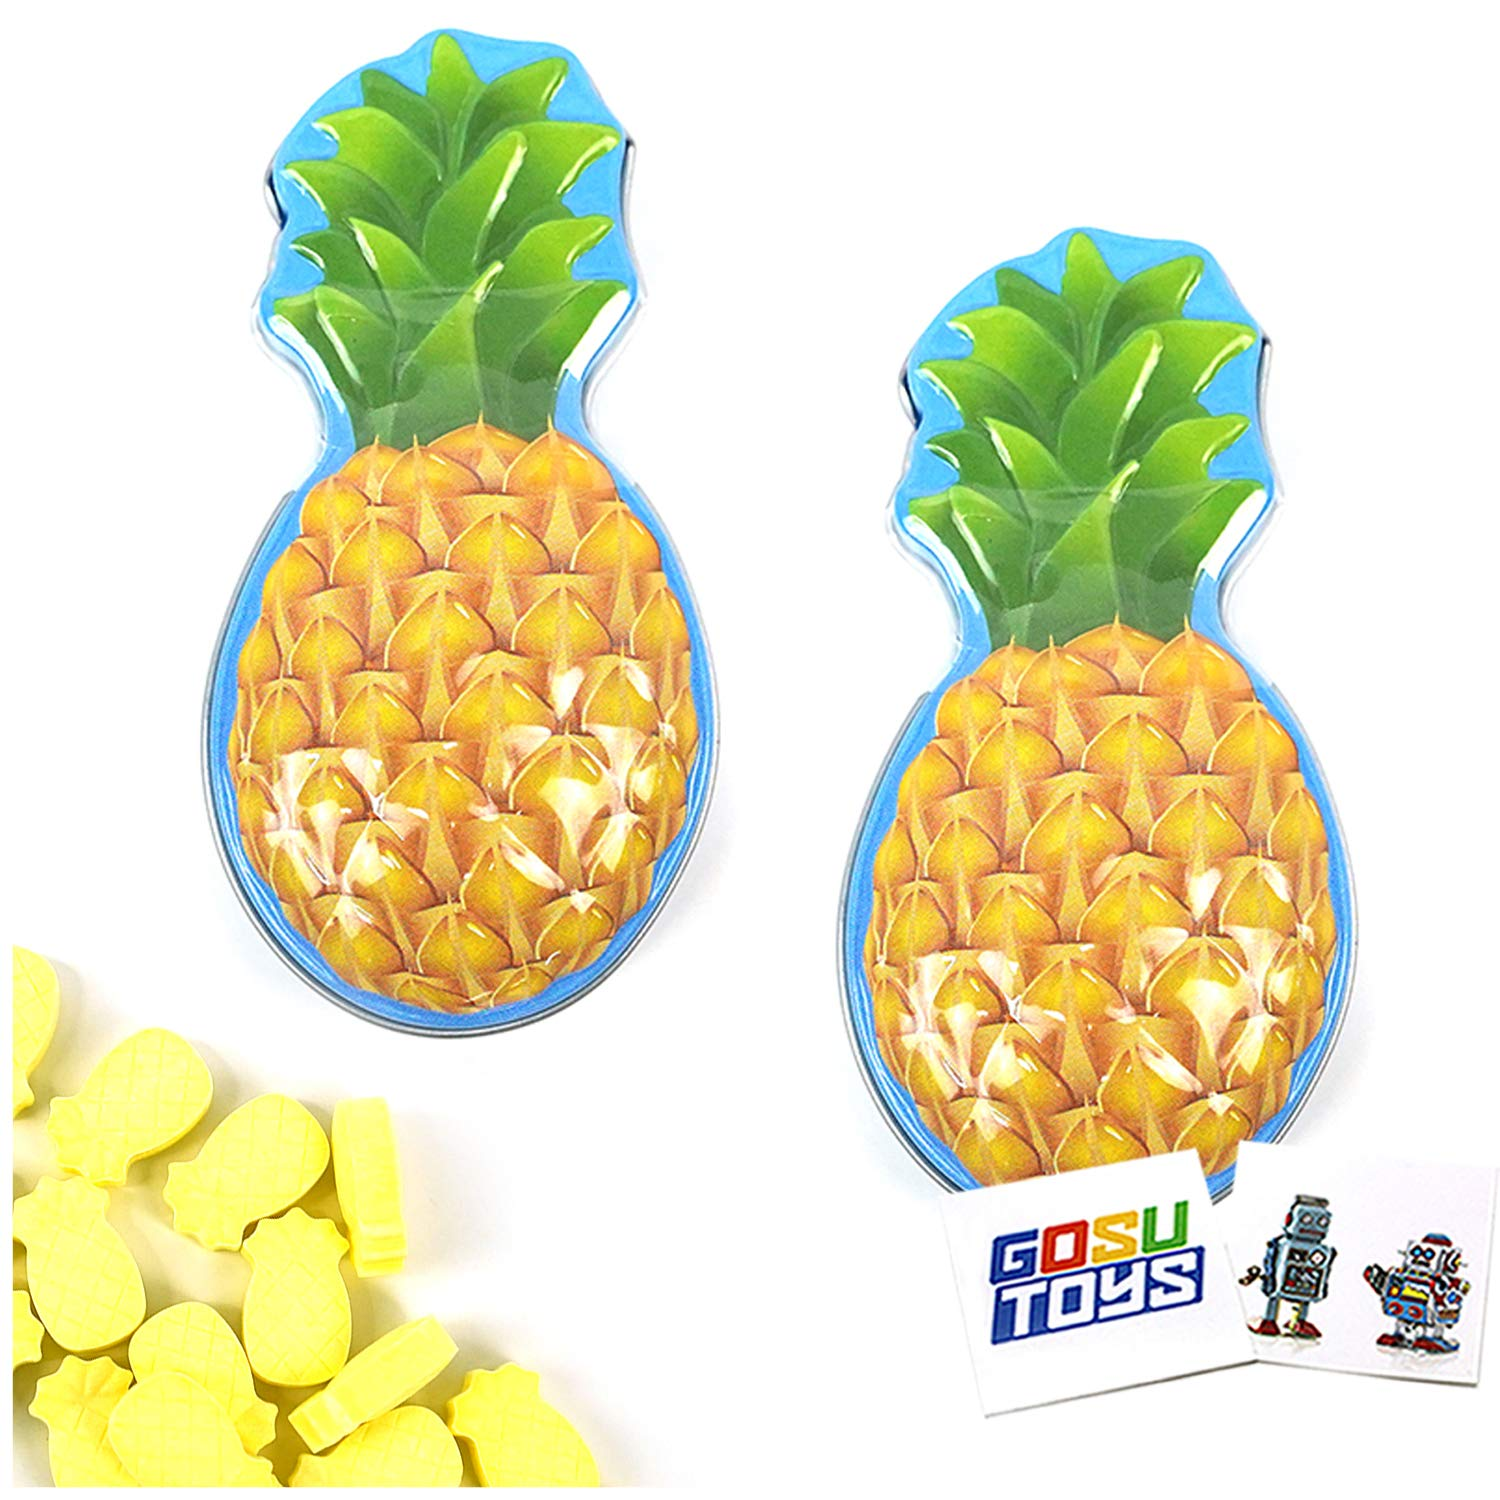 Aloha Candies Pineapple Flavor Candy (2 Pack) with 2 GosuToys Stickers